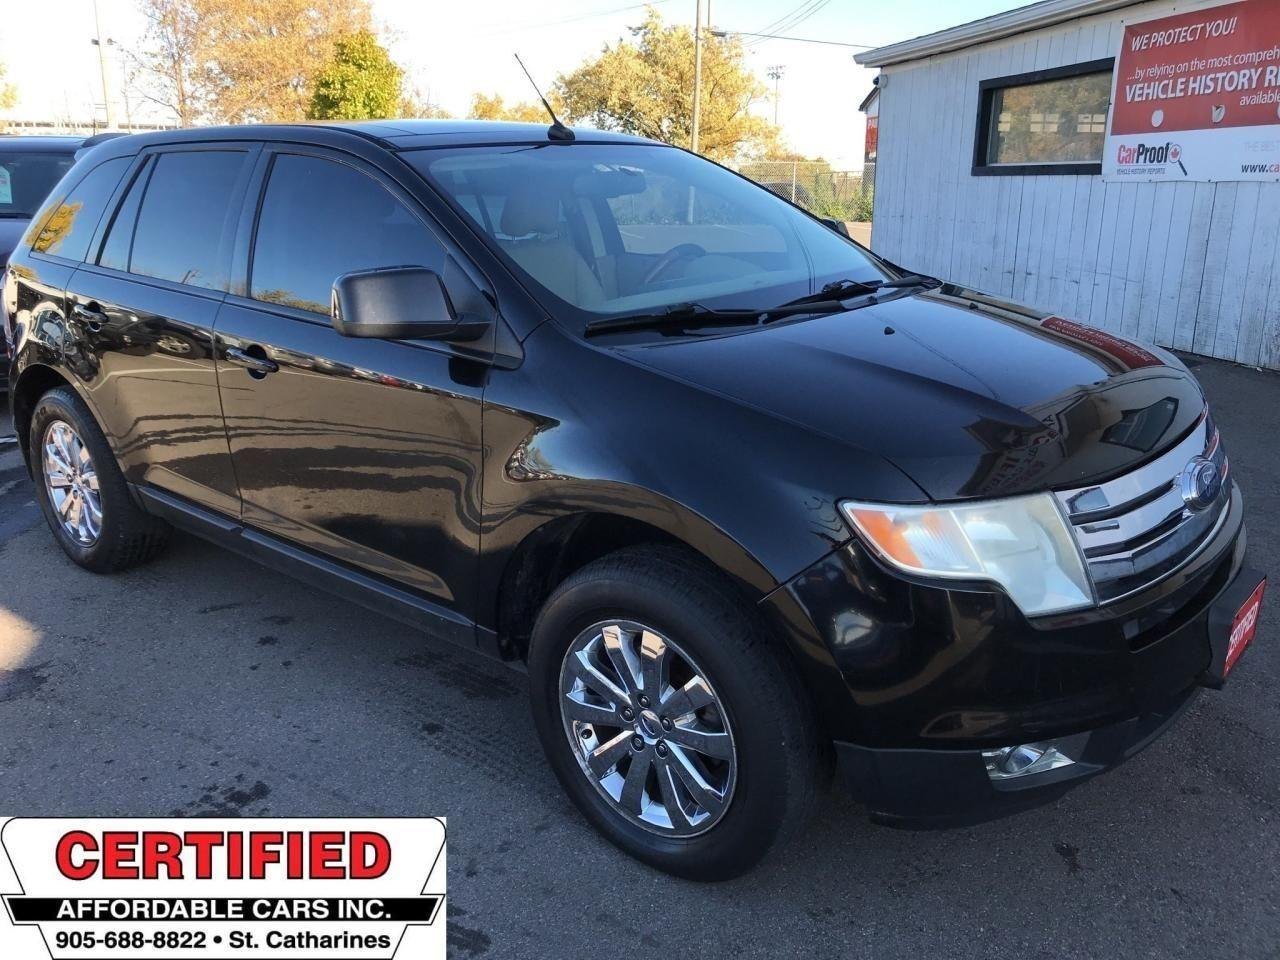 used 2007 ford edge sel for sale in st catharines, ontario carpages.ca